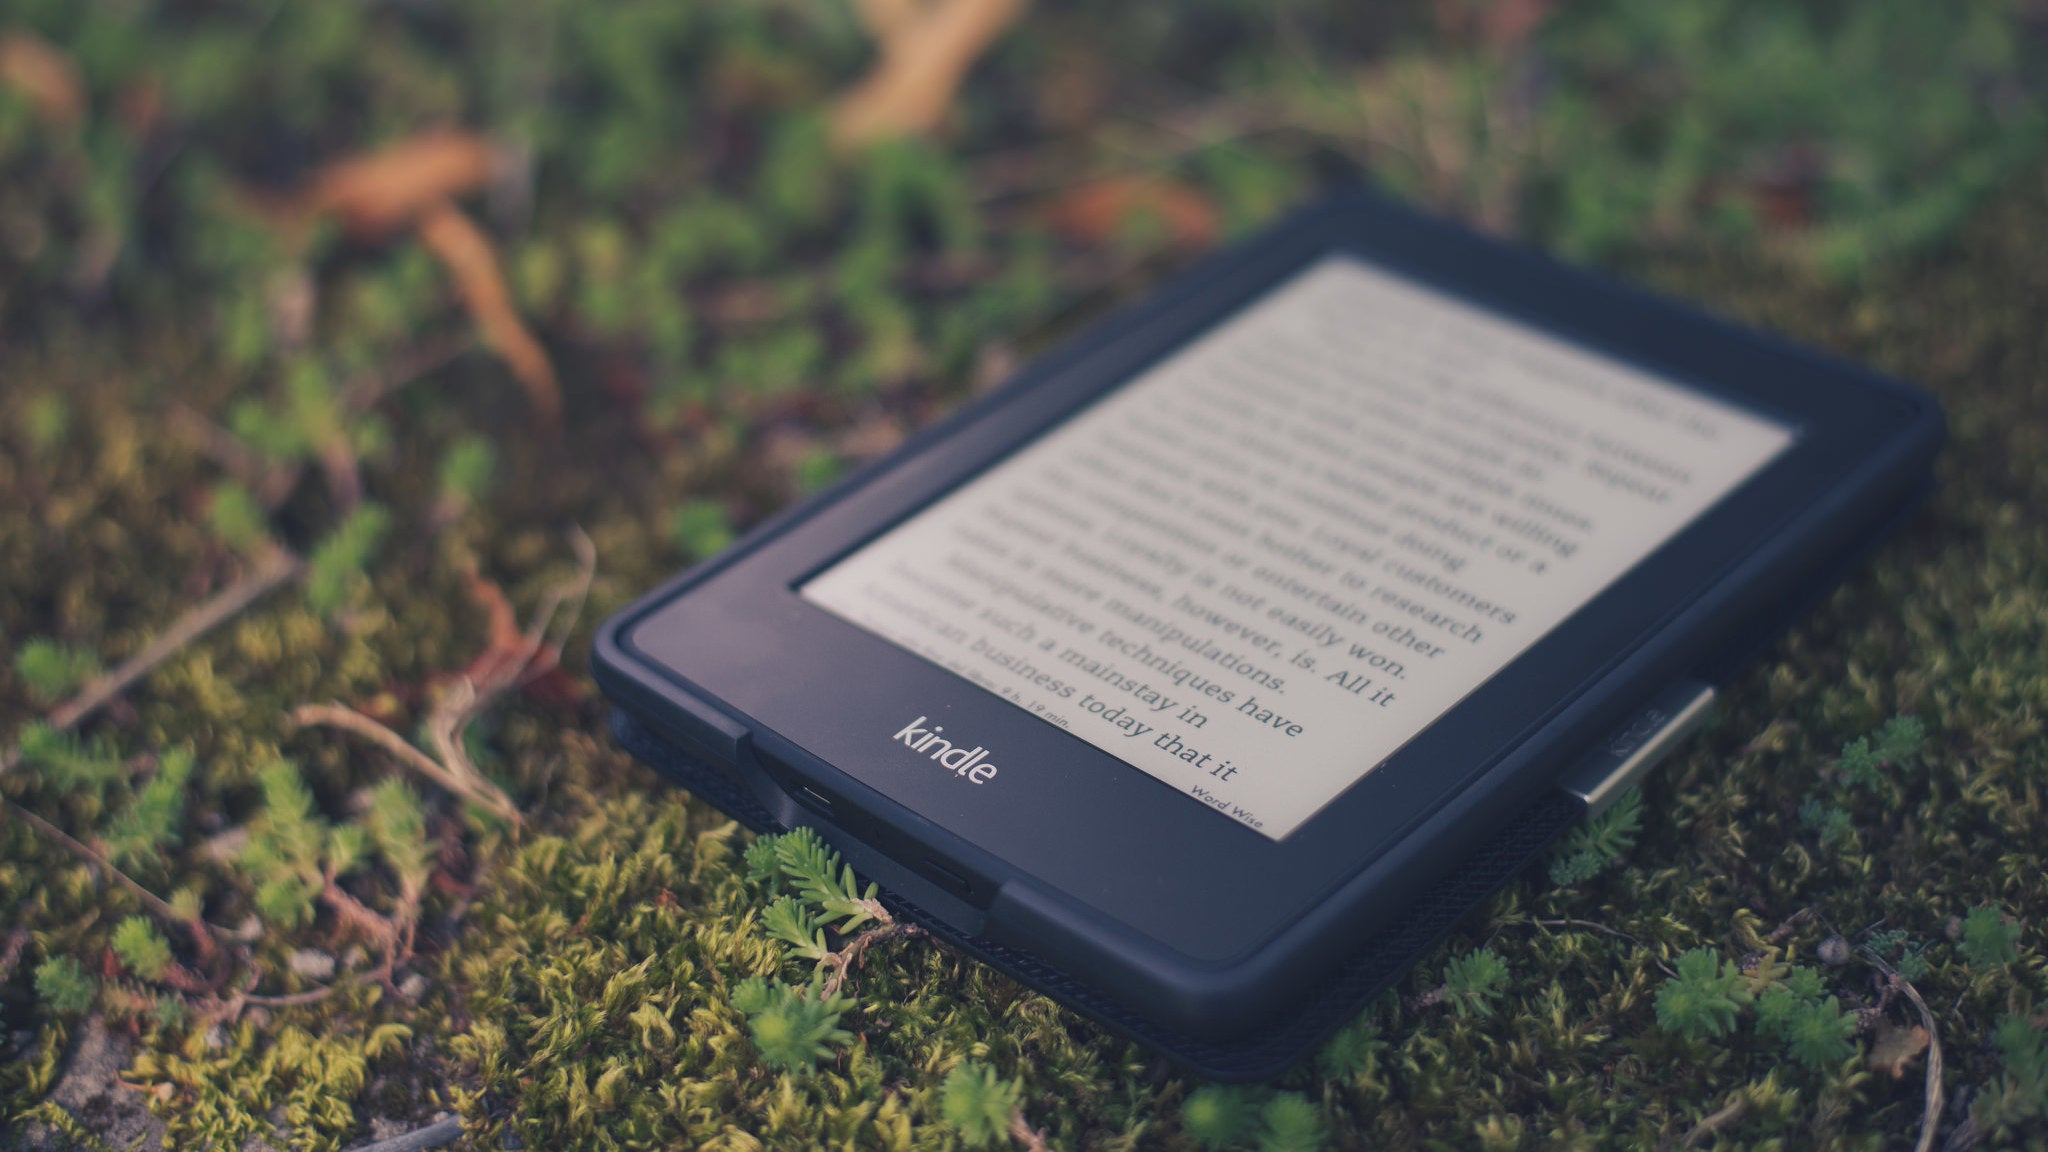 Standard EBooks Is A Gutenberg Project You'll Actually Use